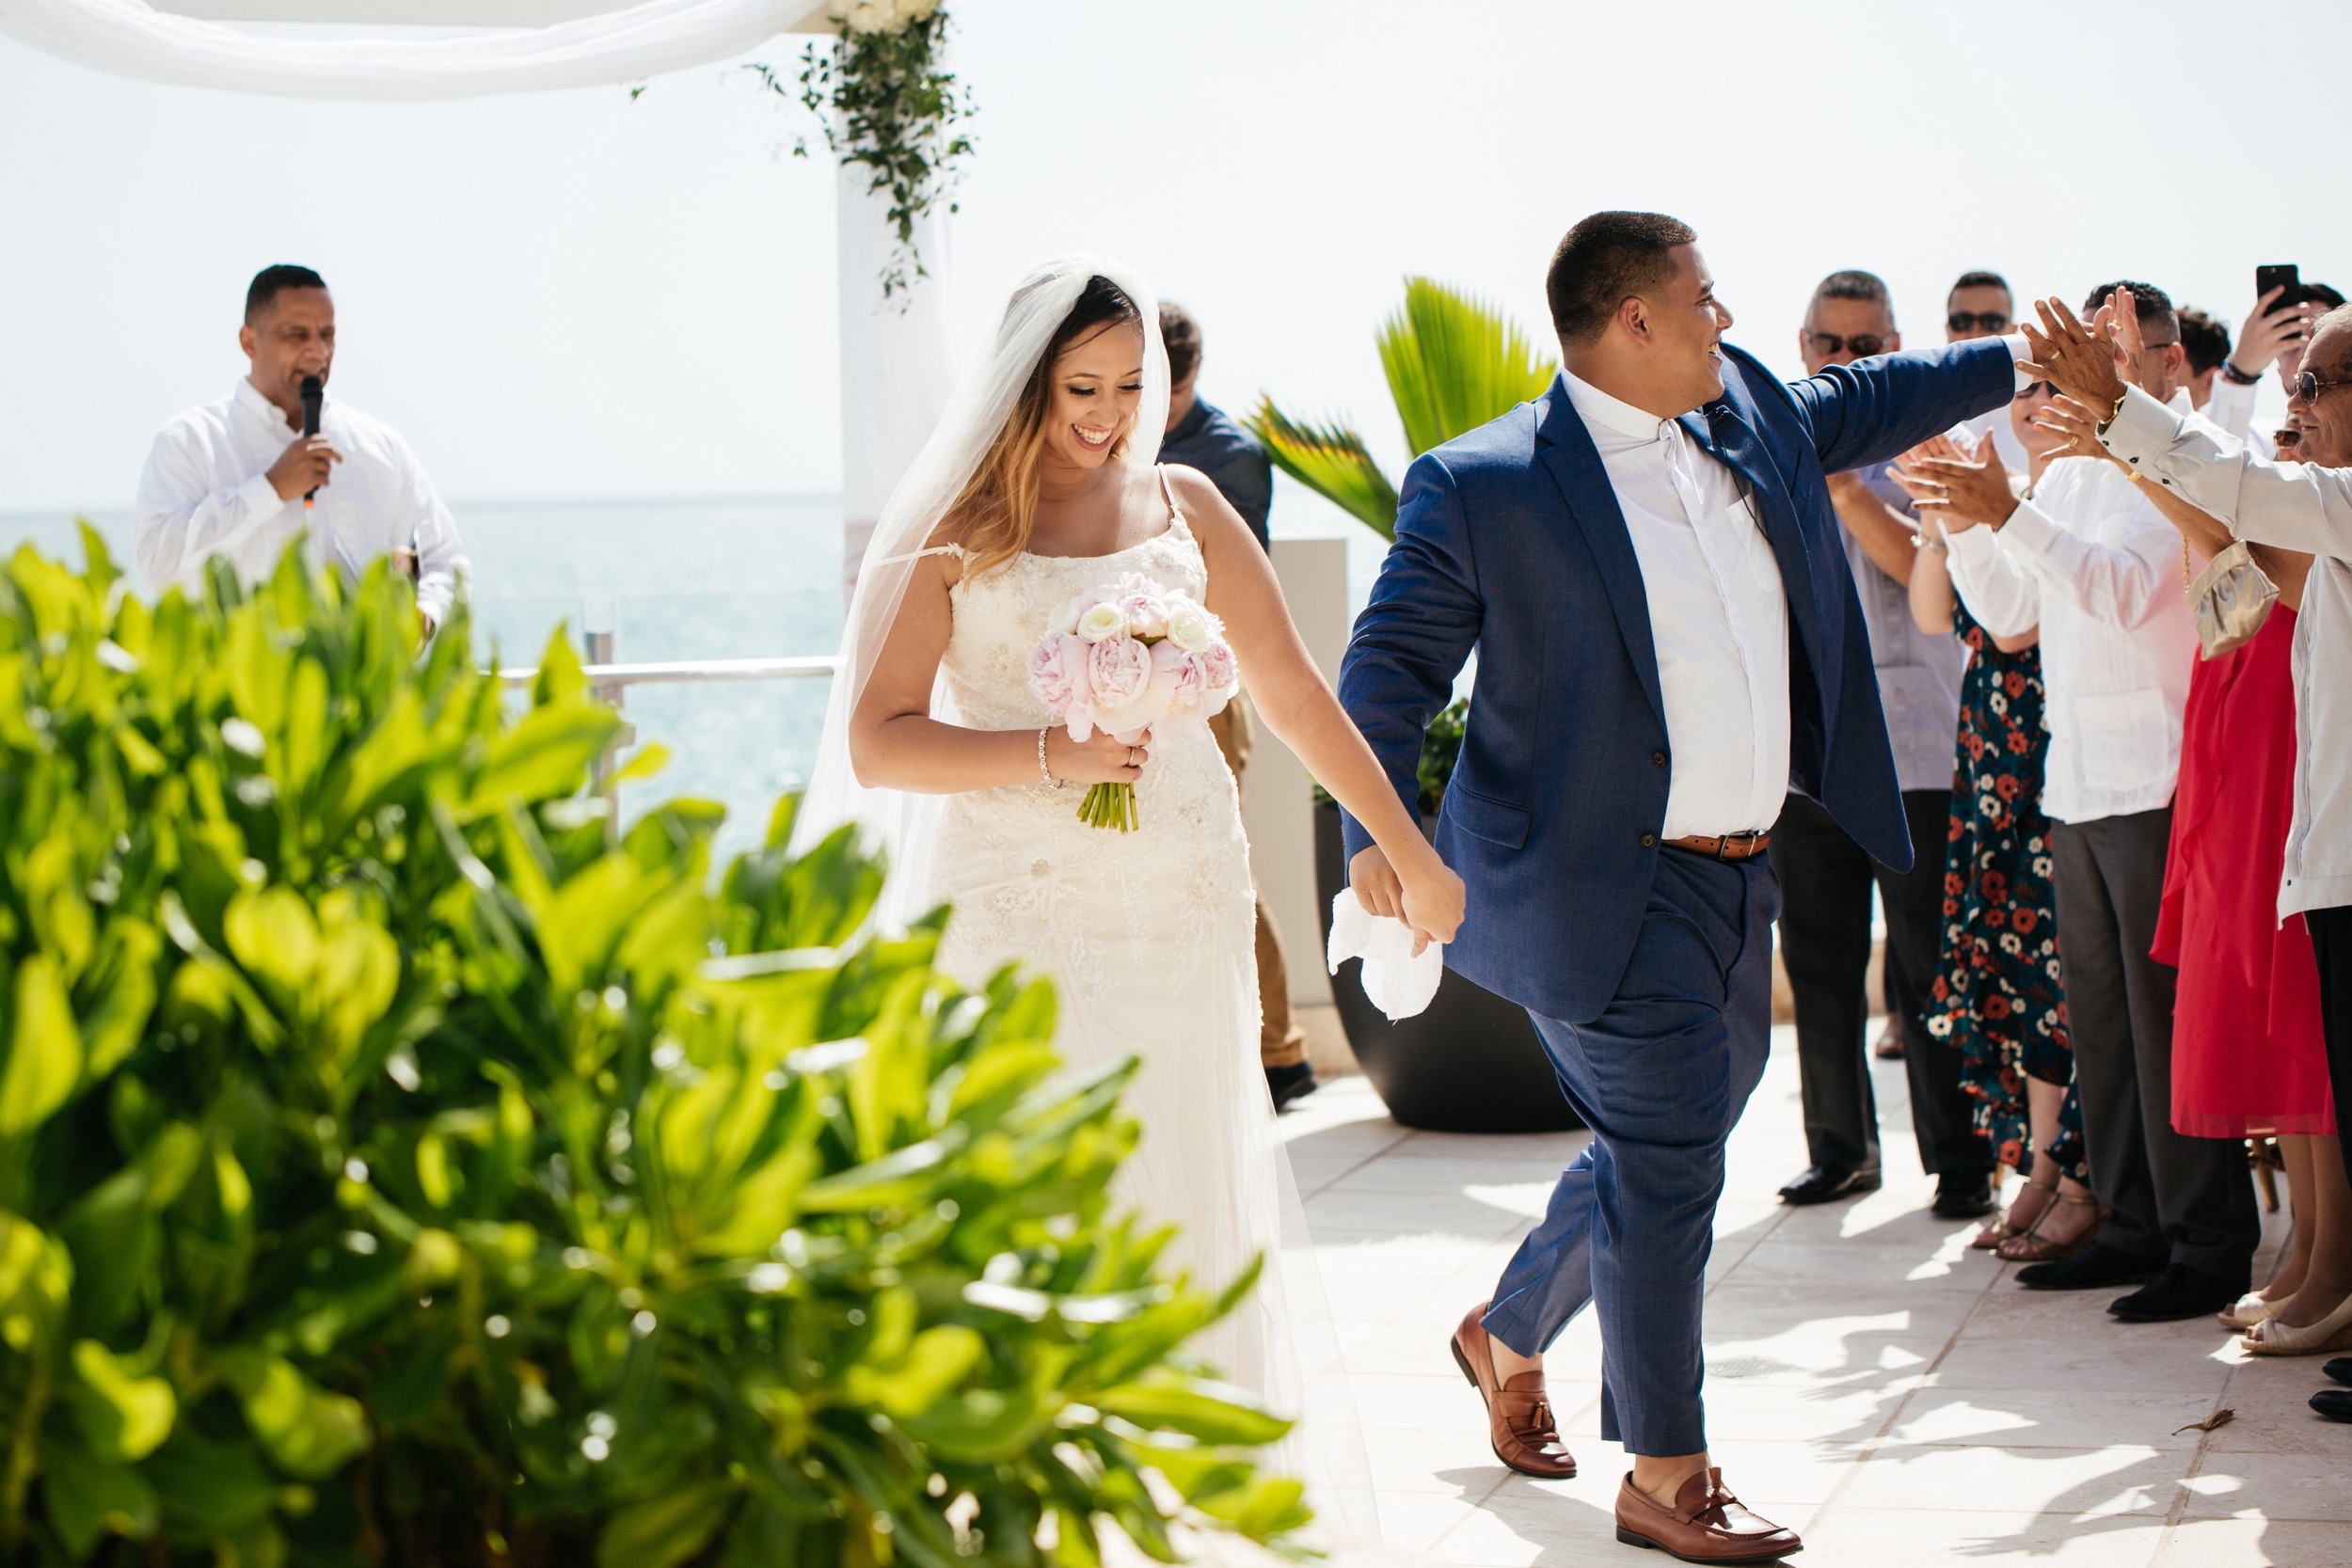 Le Cape Weddings - Destination Wedding in Puerto Rico - Condado Vanderbuilt Wedding -6371.jpg